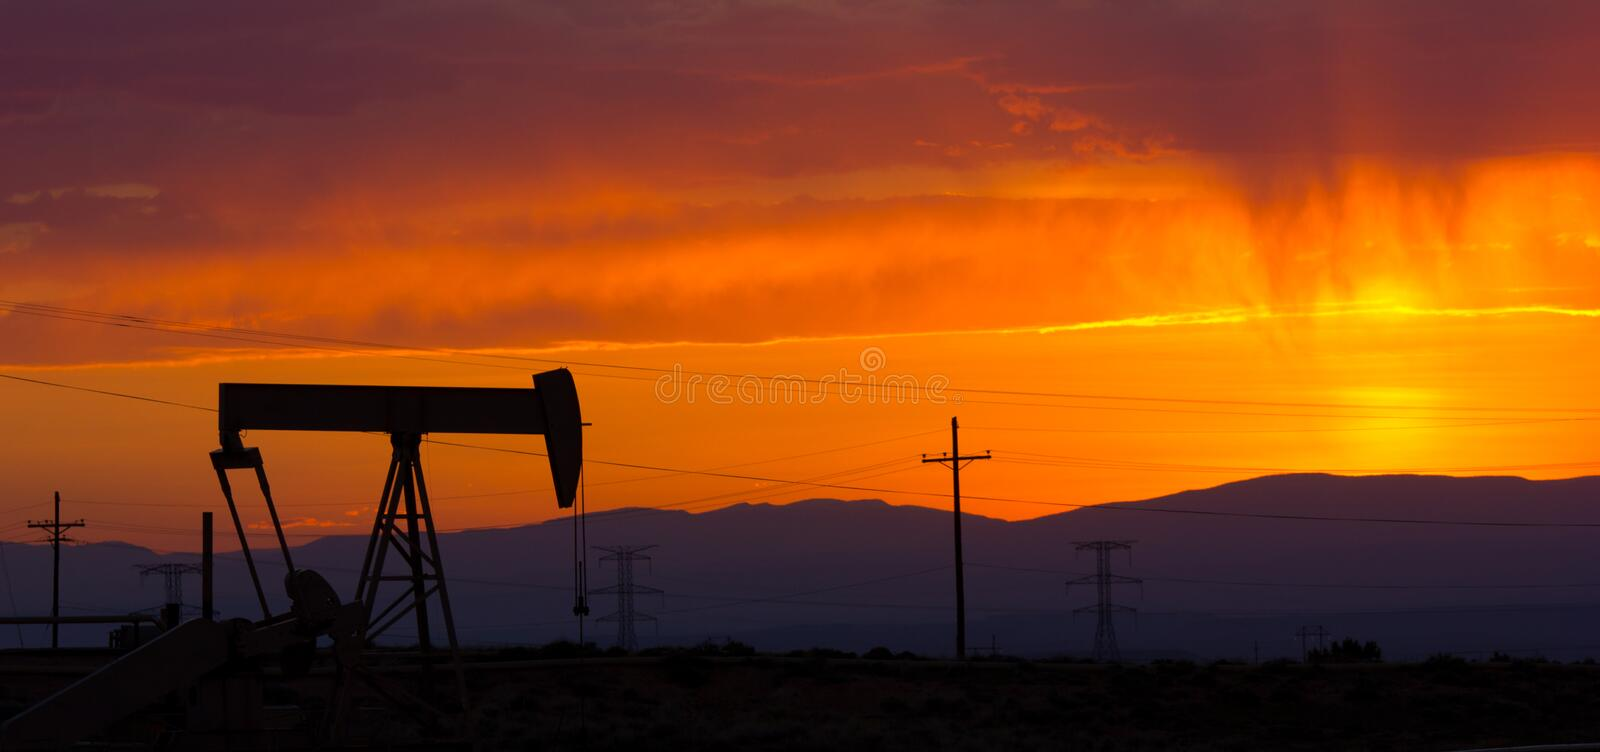 Oil Pumpjack Sunset 4 royalty free stock image